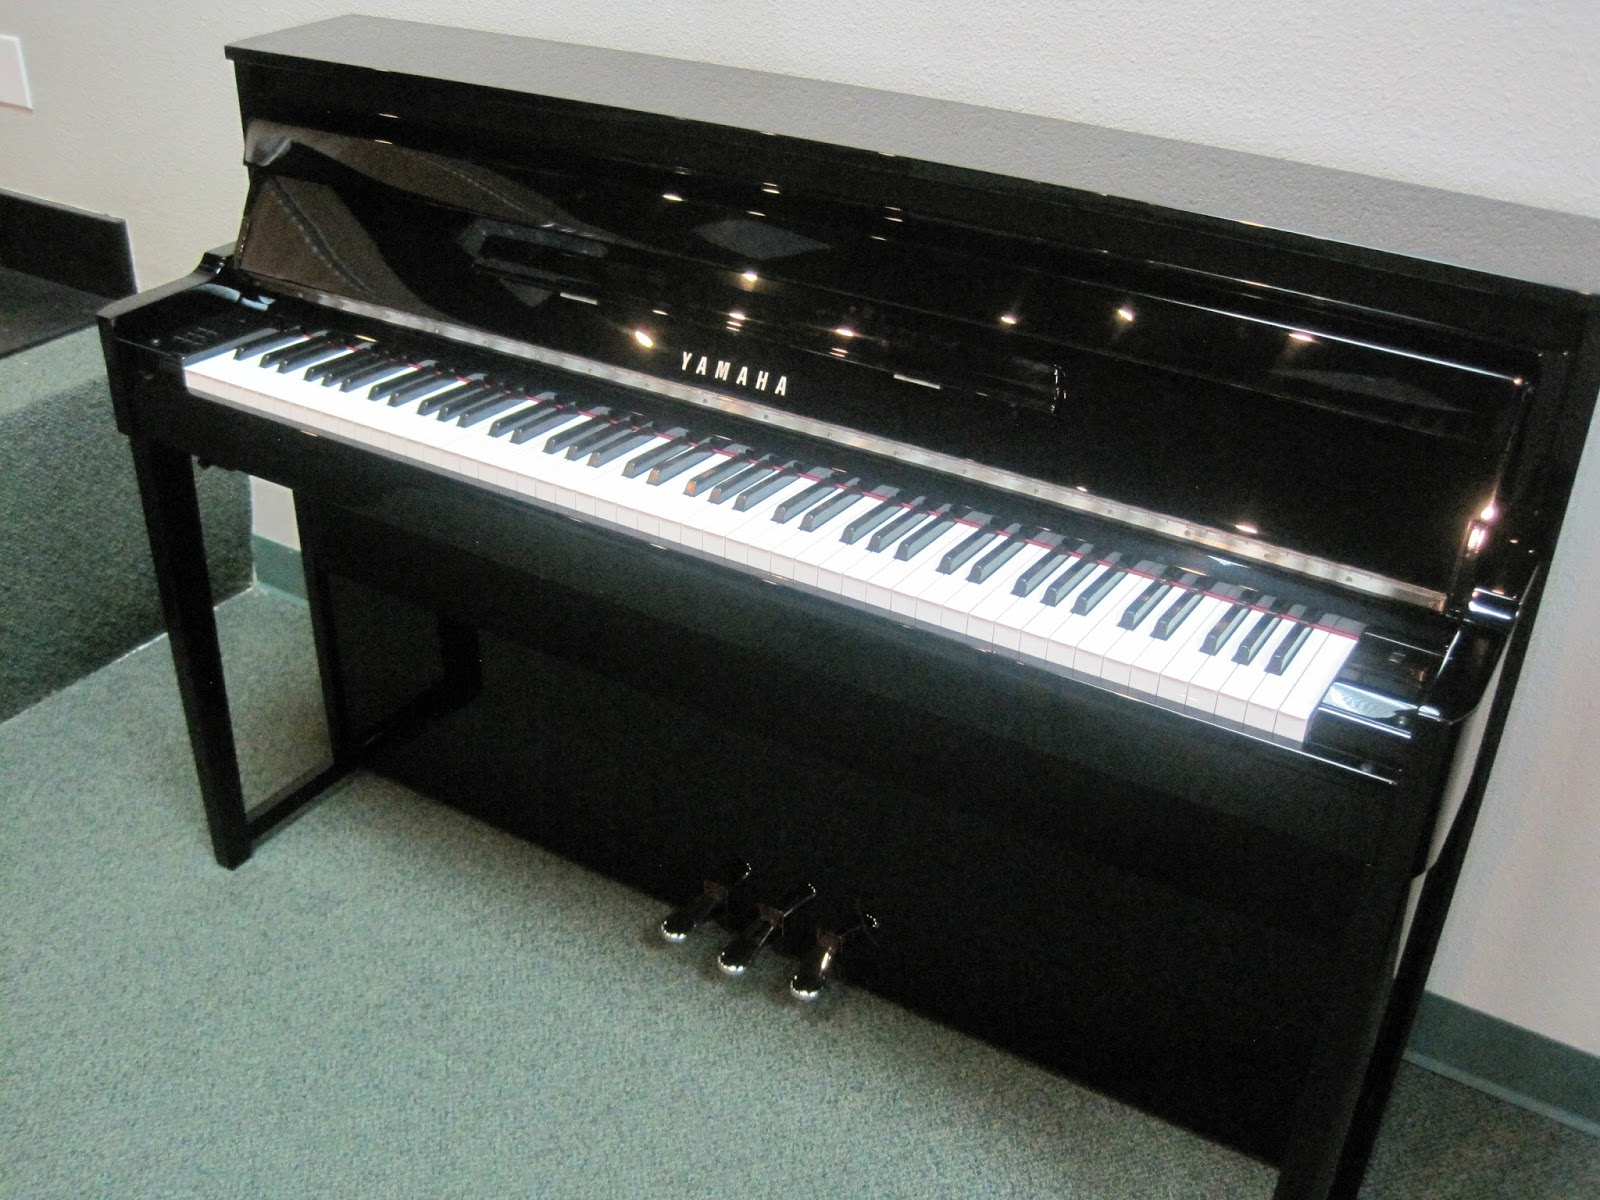 Yamaha Digital Piano Review